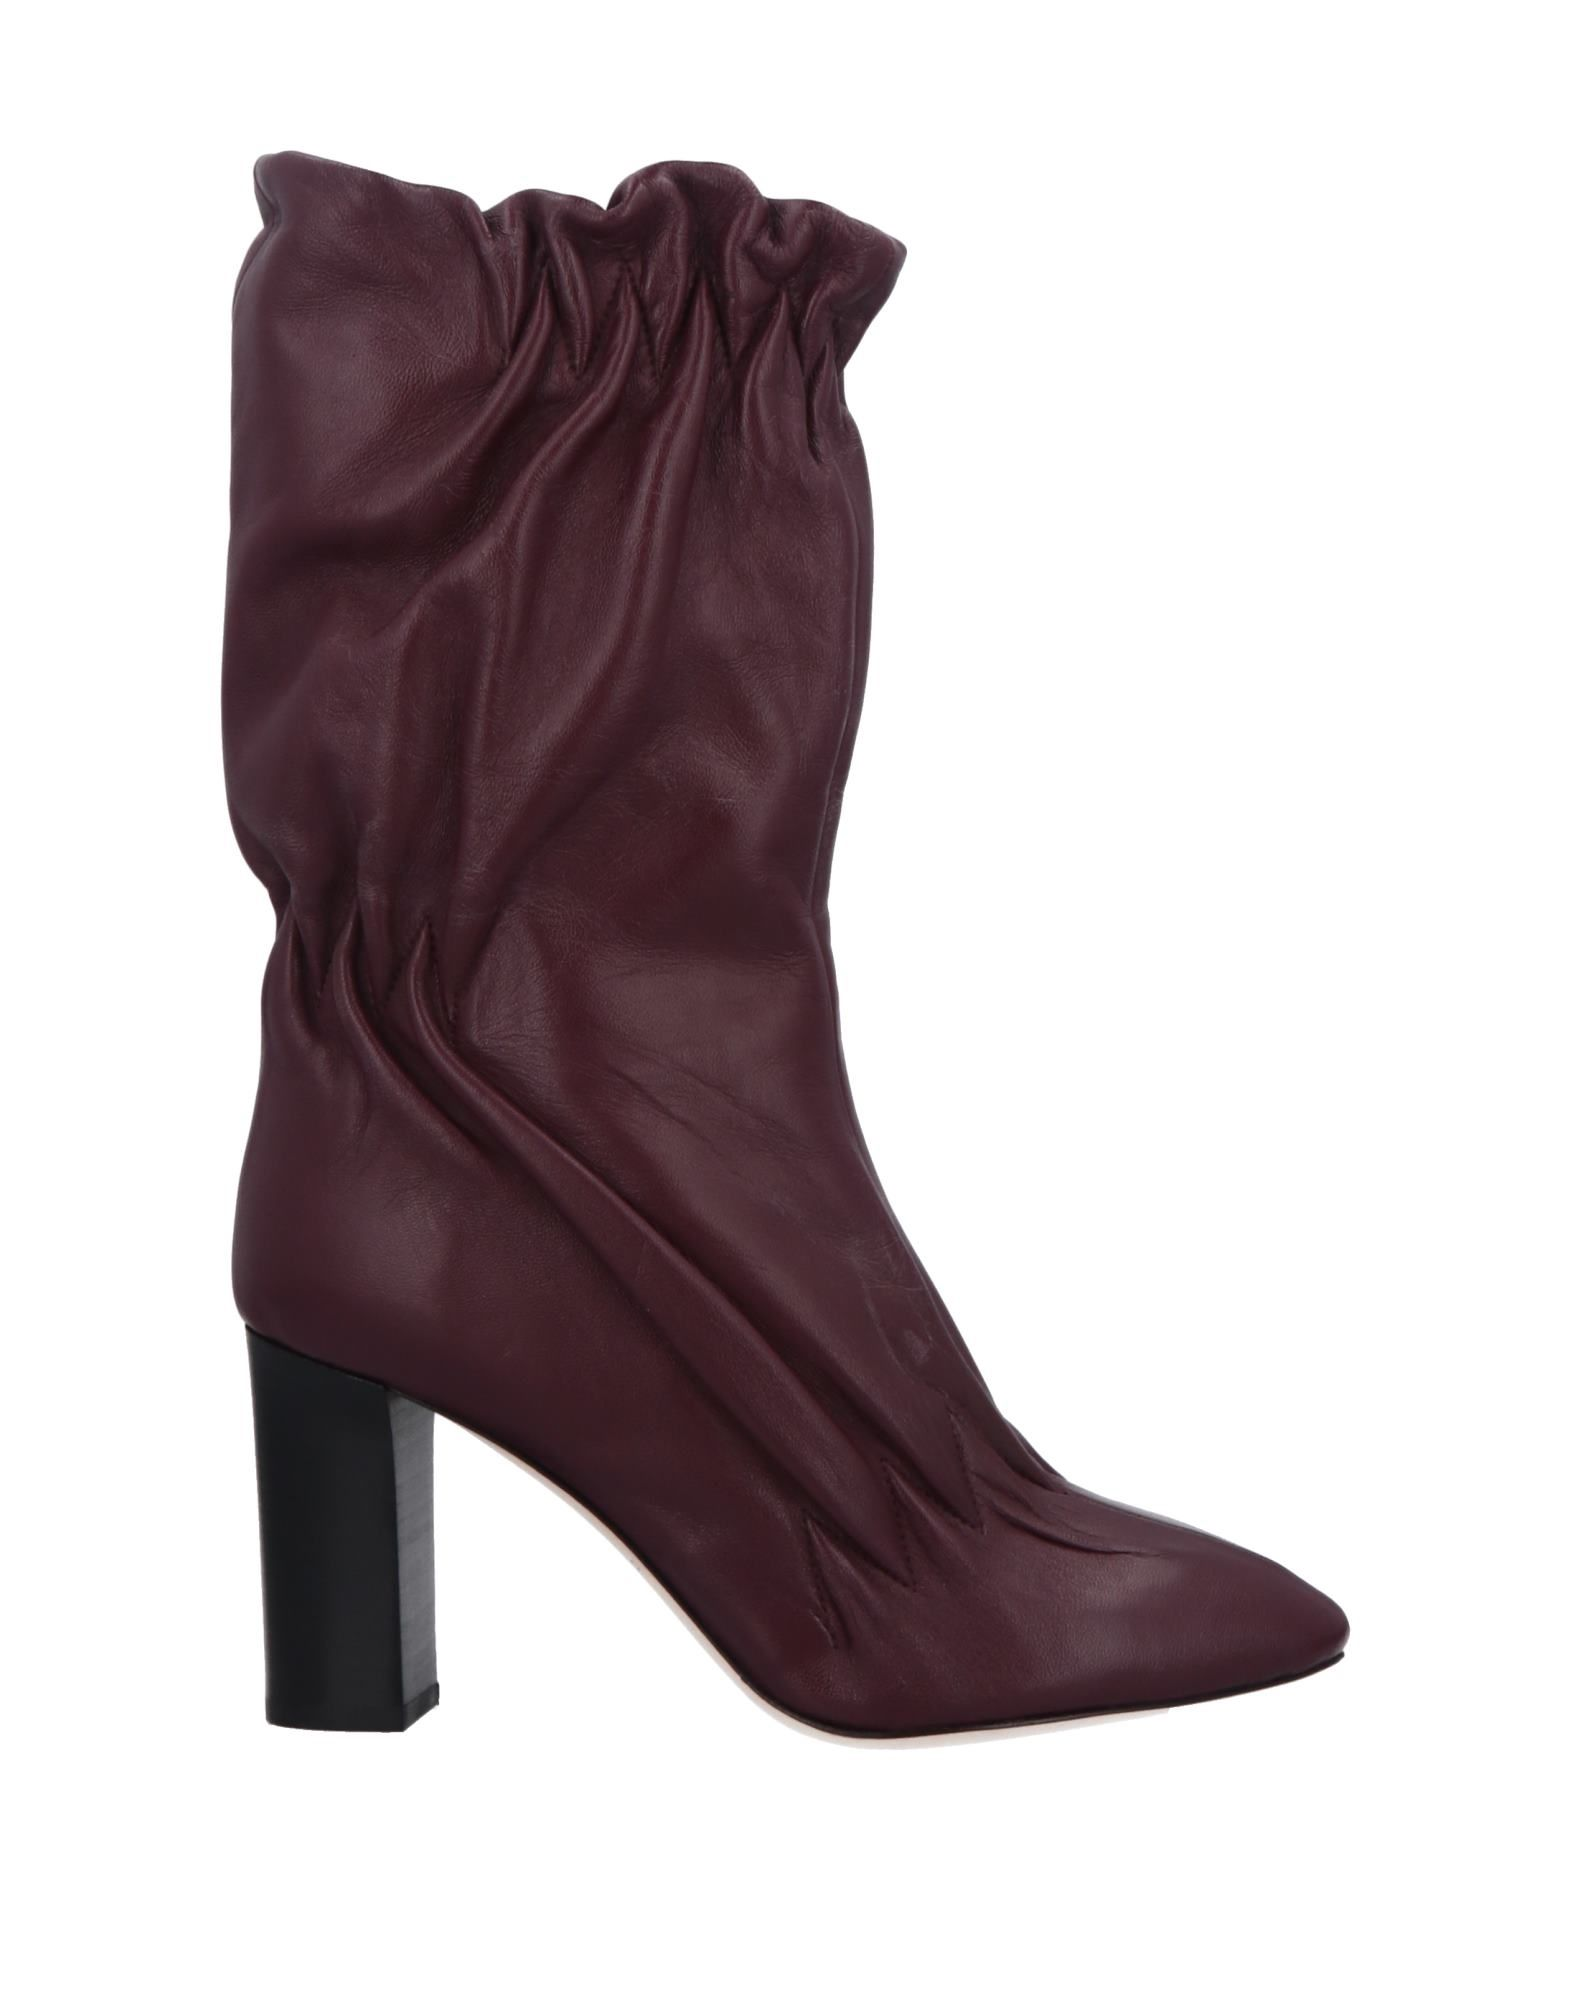 75d2c498099 Cavallini ankle boots   booties for women on sale